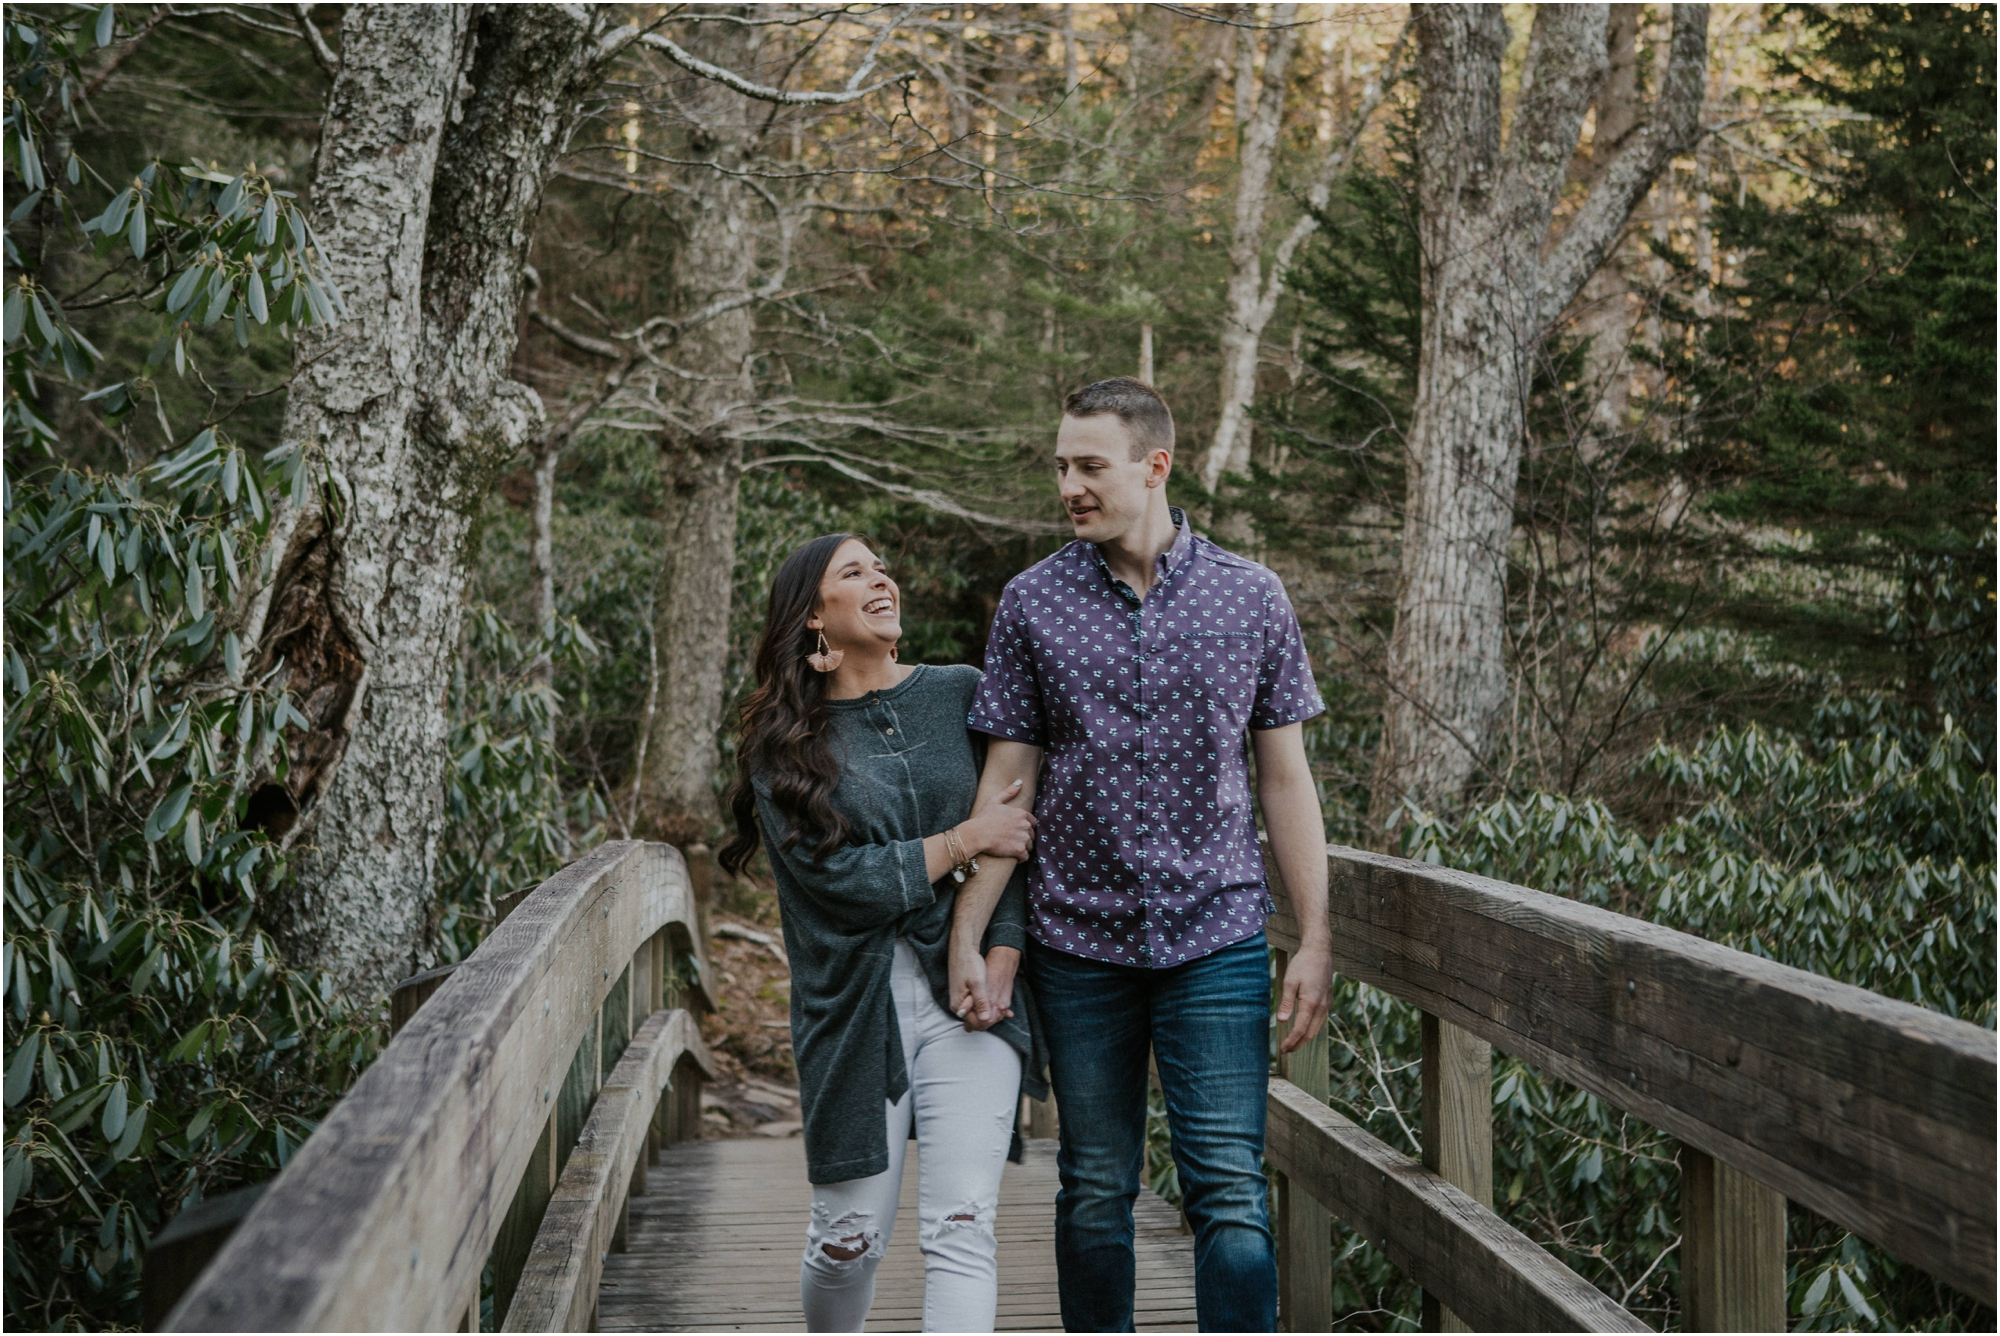 blue-ridge-parkway-engagement-session-north-carolina-boone-blowing-rock-northeast-tennessee-katy-sergent-photography_0007.jpg